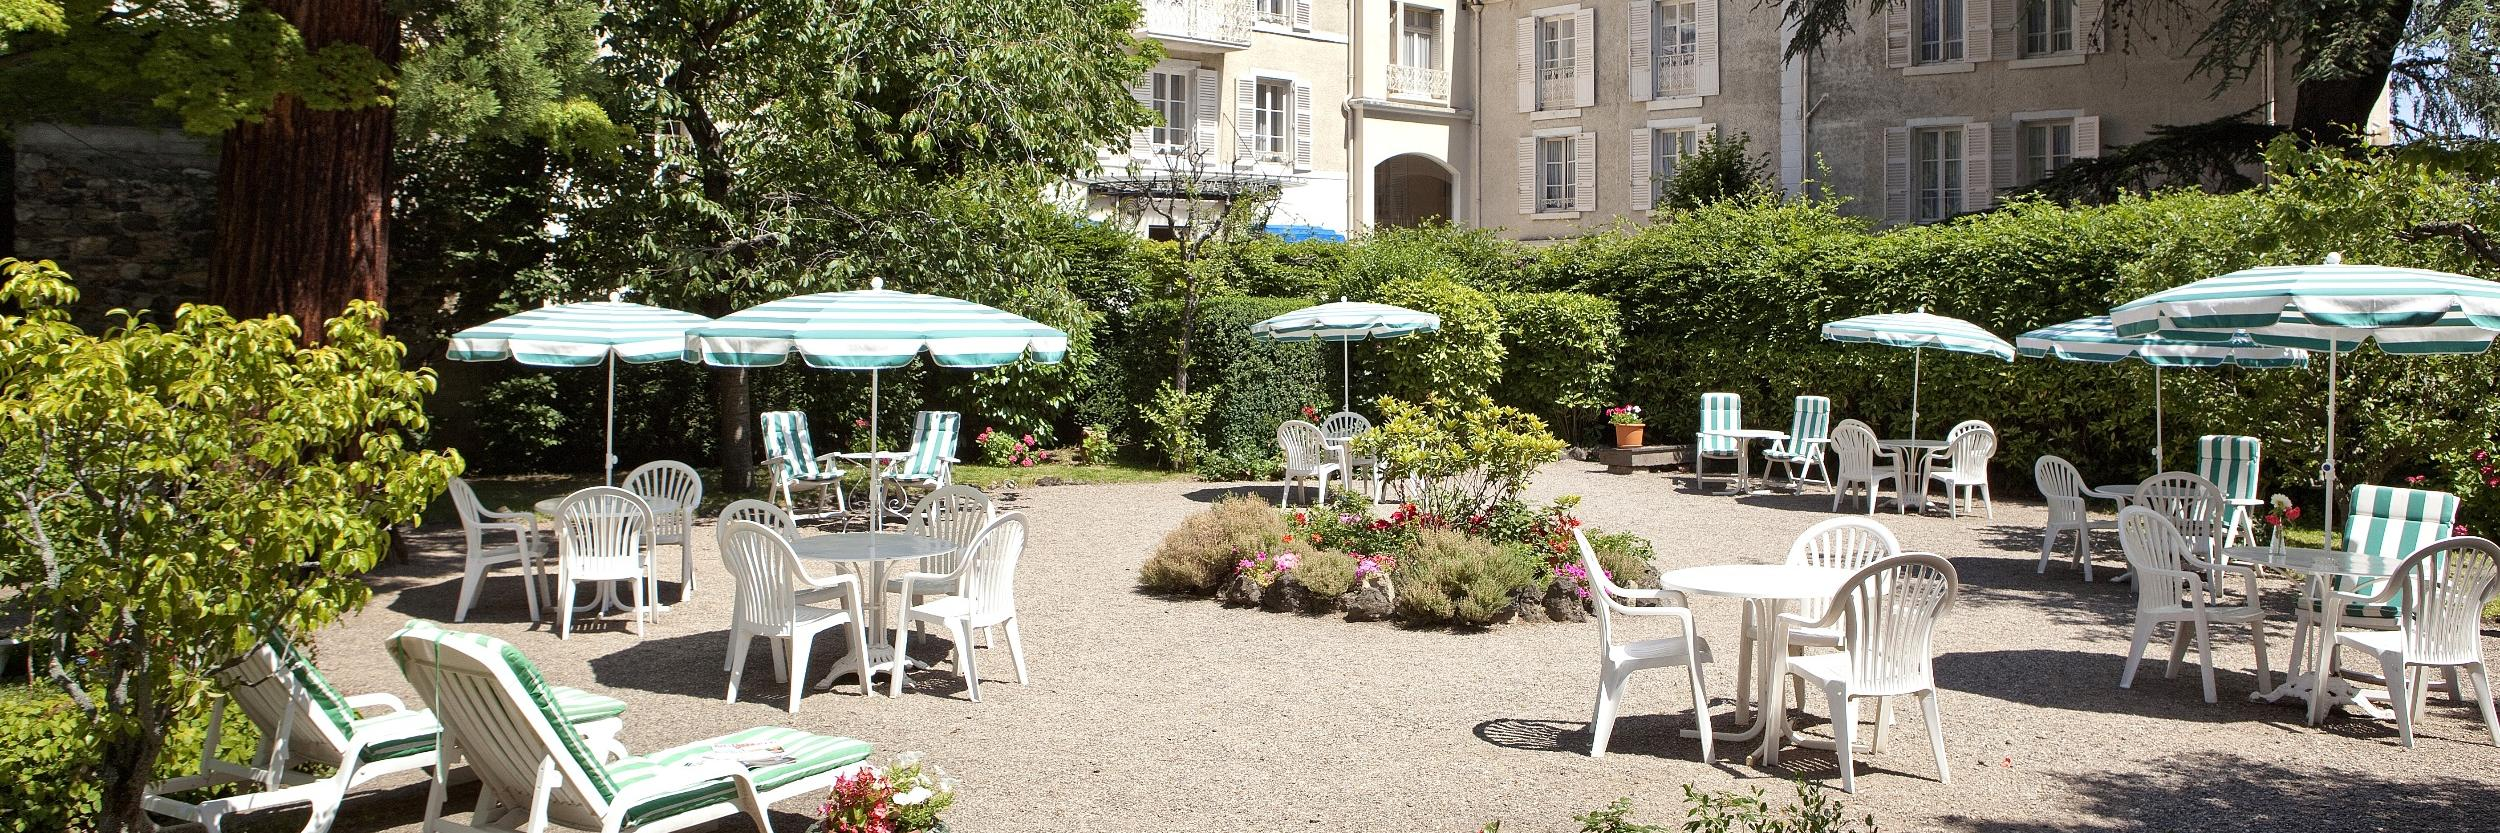 Hôtel Royal Saint Mart -